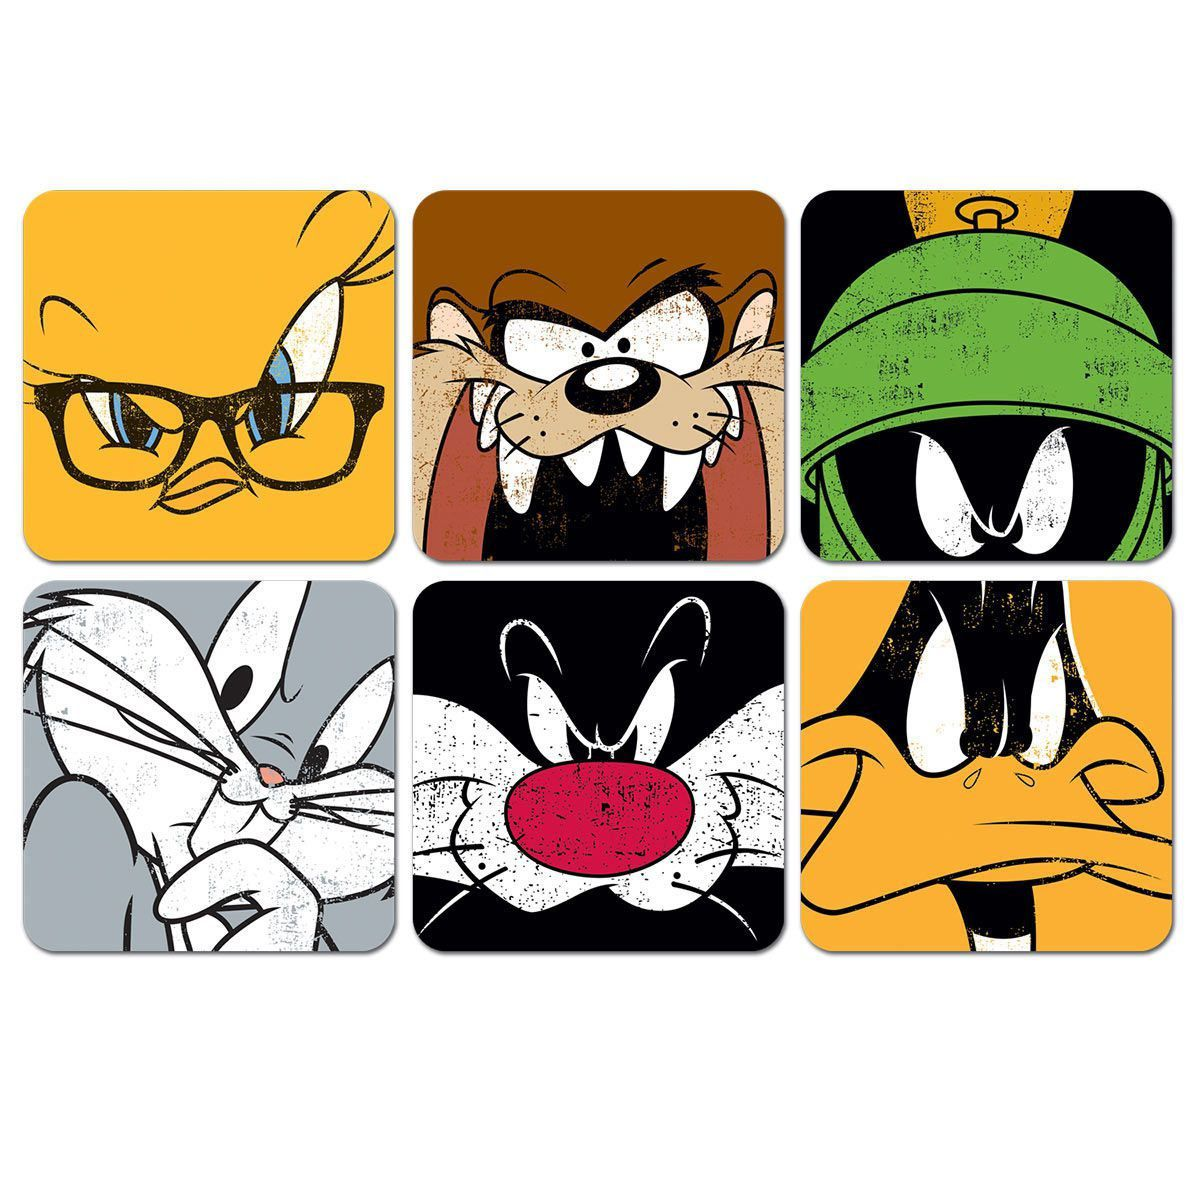 Conjunto com 6 Porta Copos Looney Tunes Personagens  - bandUP Store Marketplace